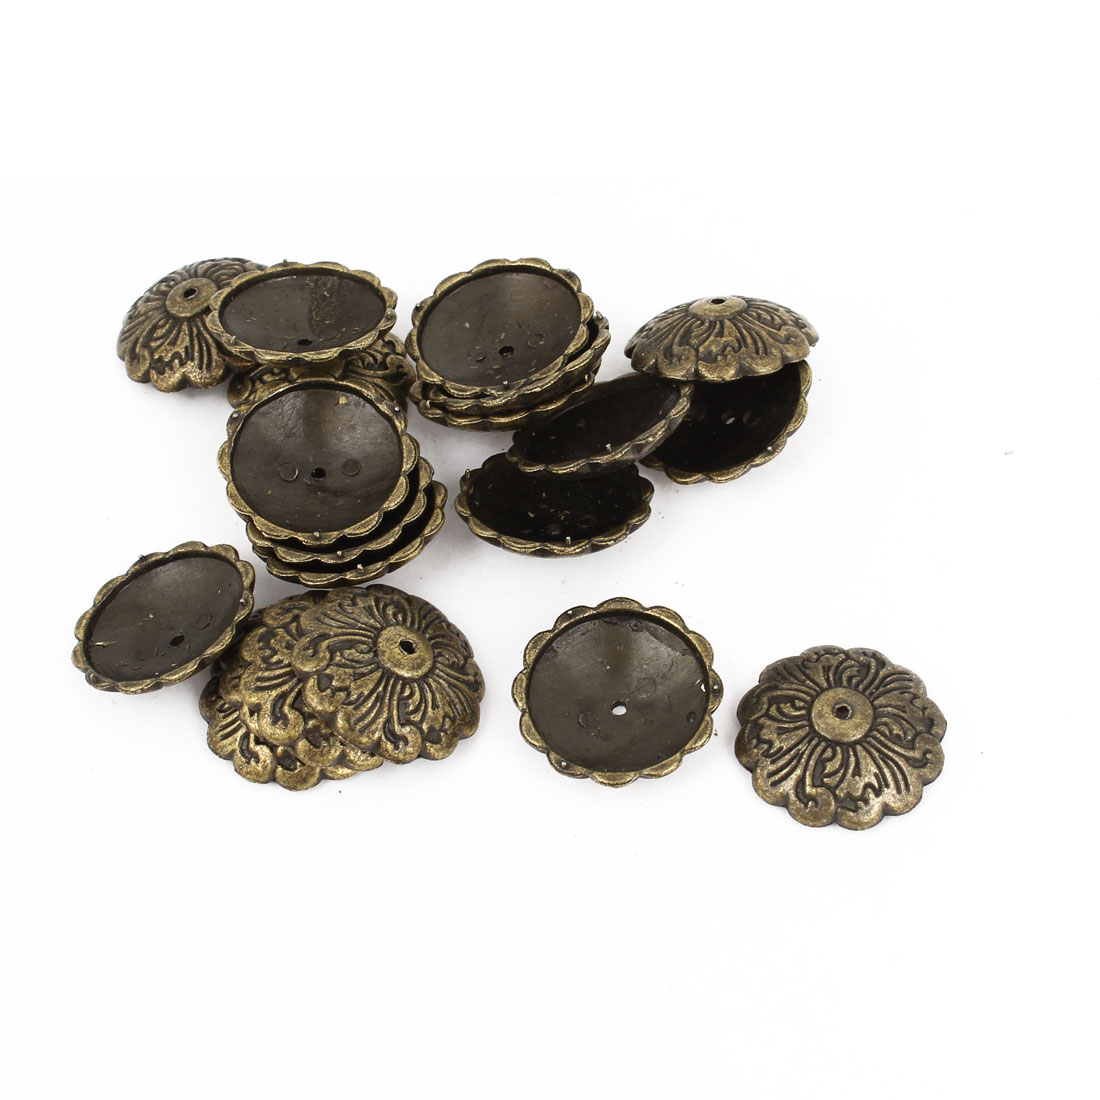 20 Pcs Bronze Tone Flower Carve Notice Board Pushpins Thumb Tacks 22mm Dia